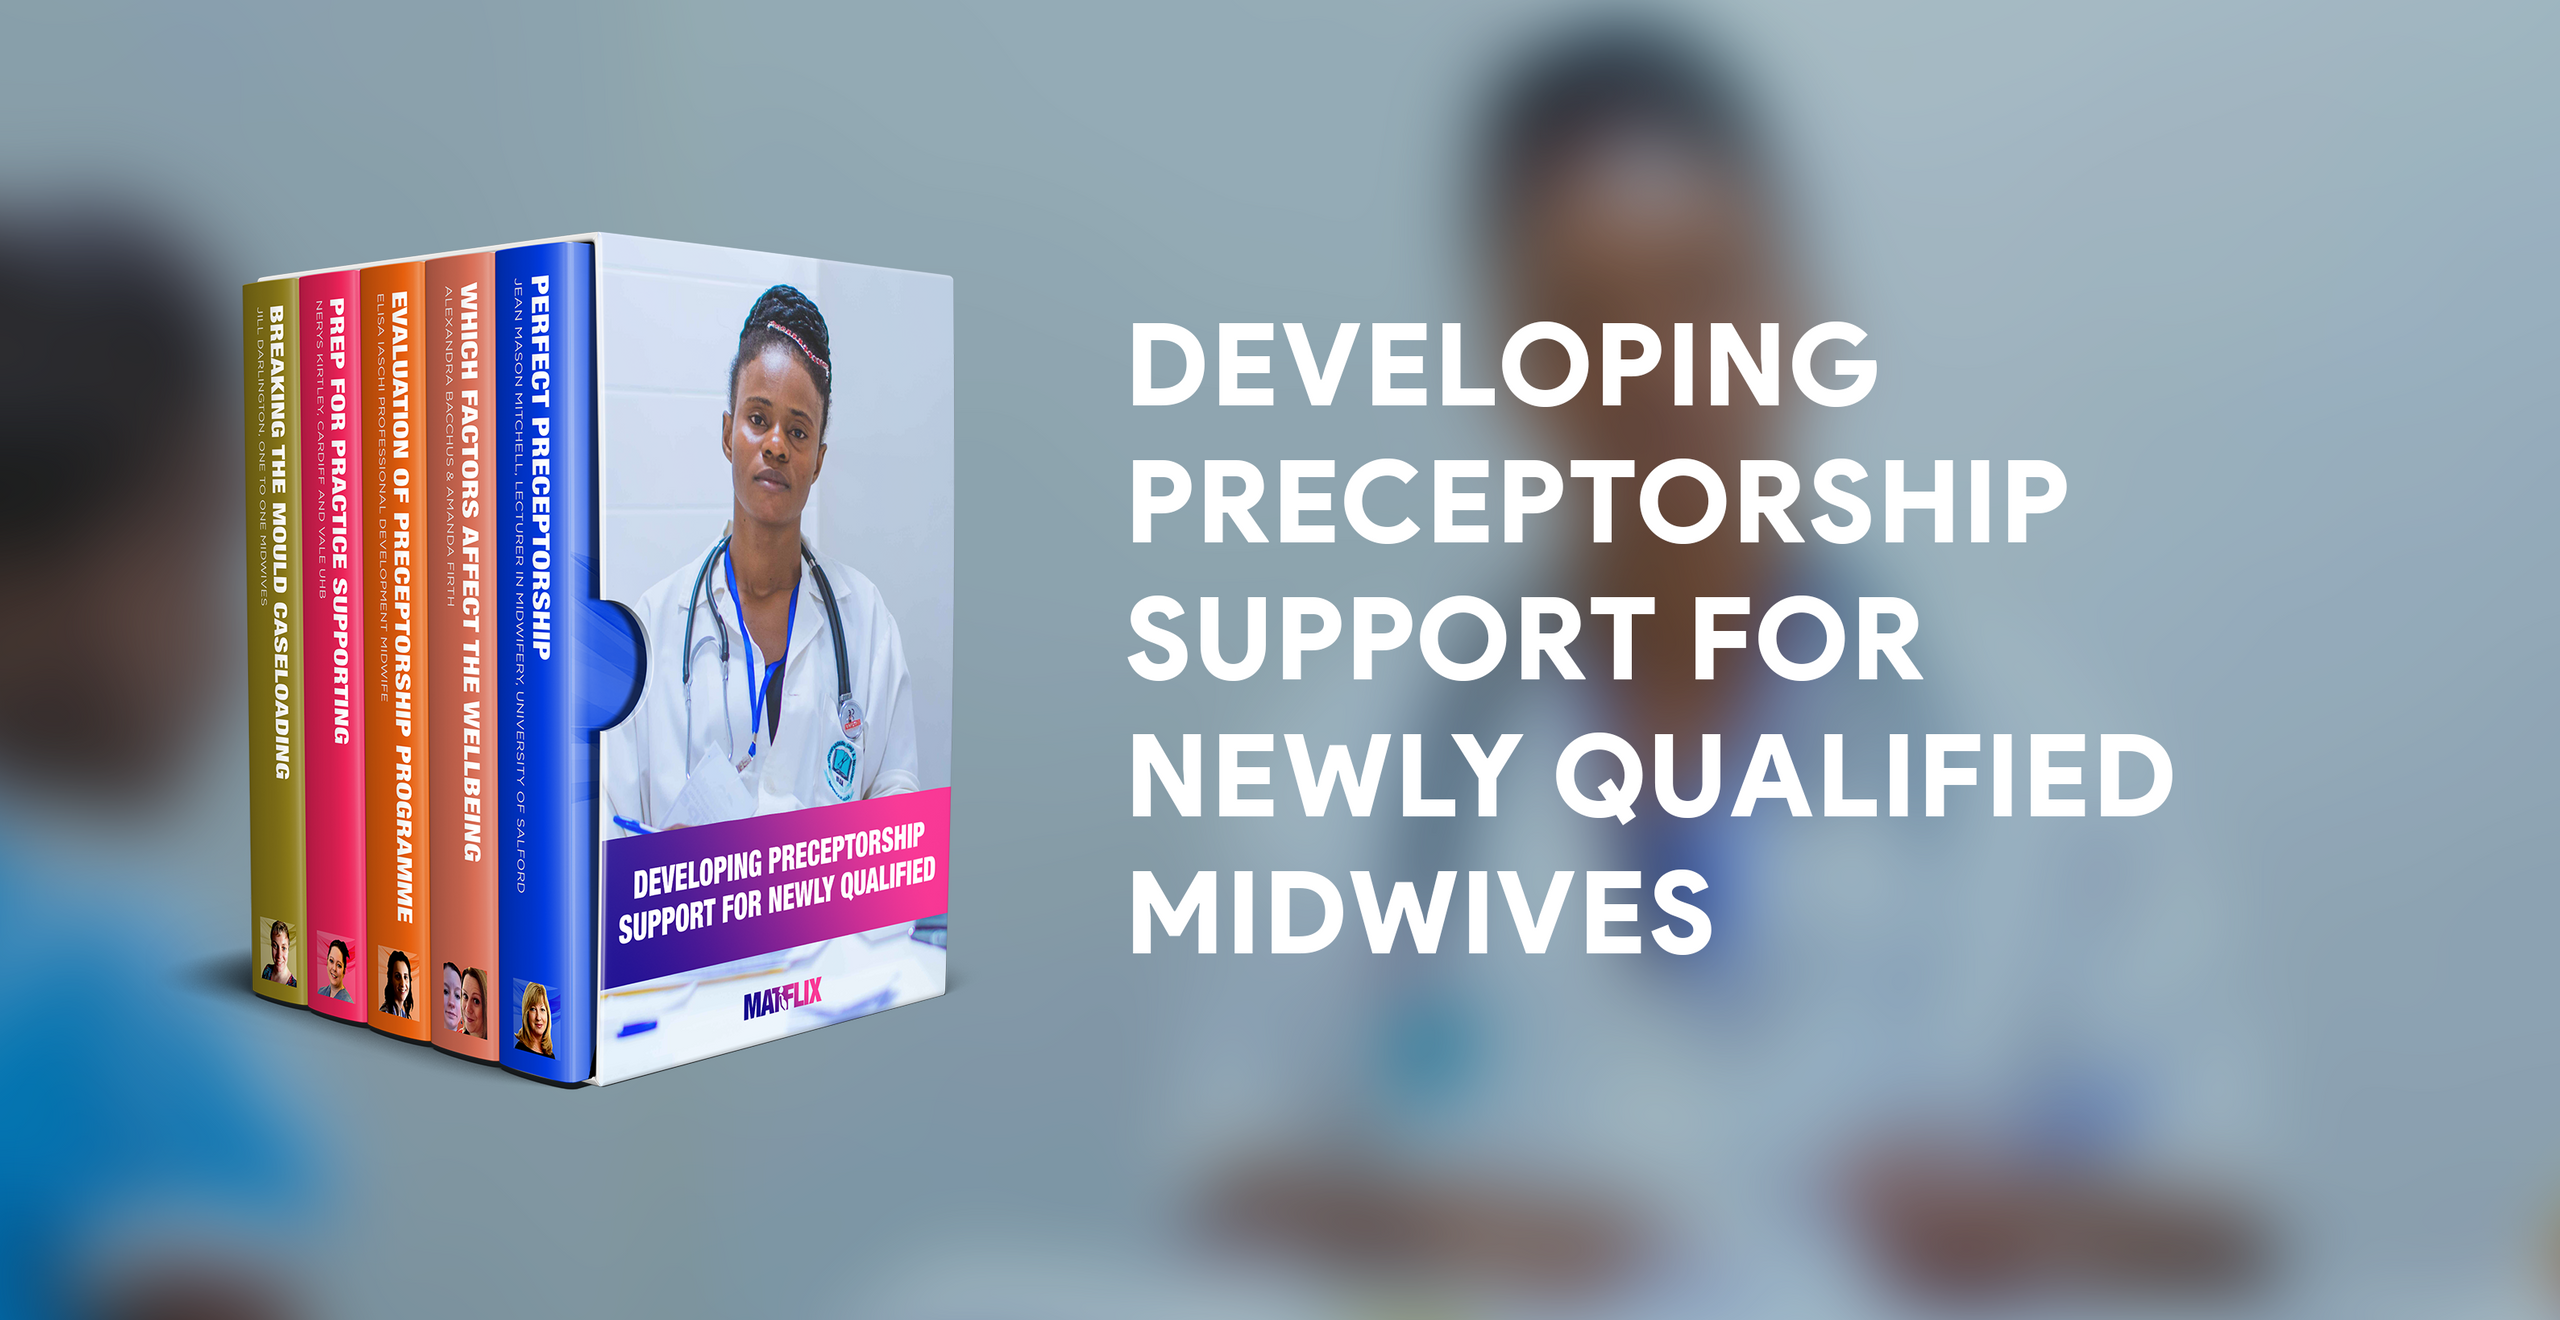 DEVELOPING PRECEPTORSHIP SUPPORT FOR NEWLY QUALIFIED MIDWIVES